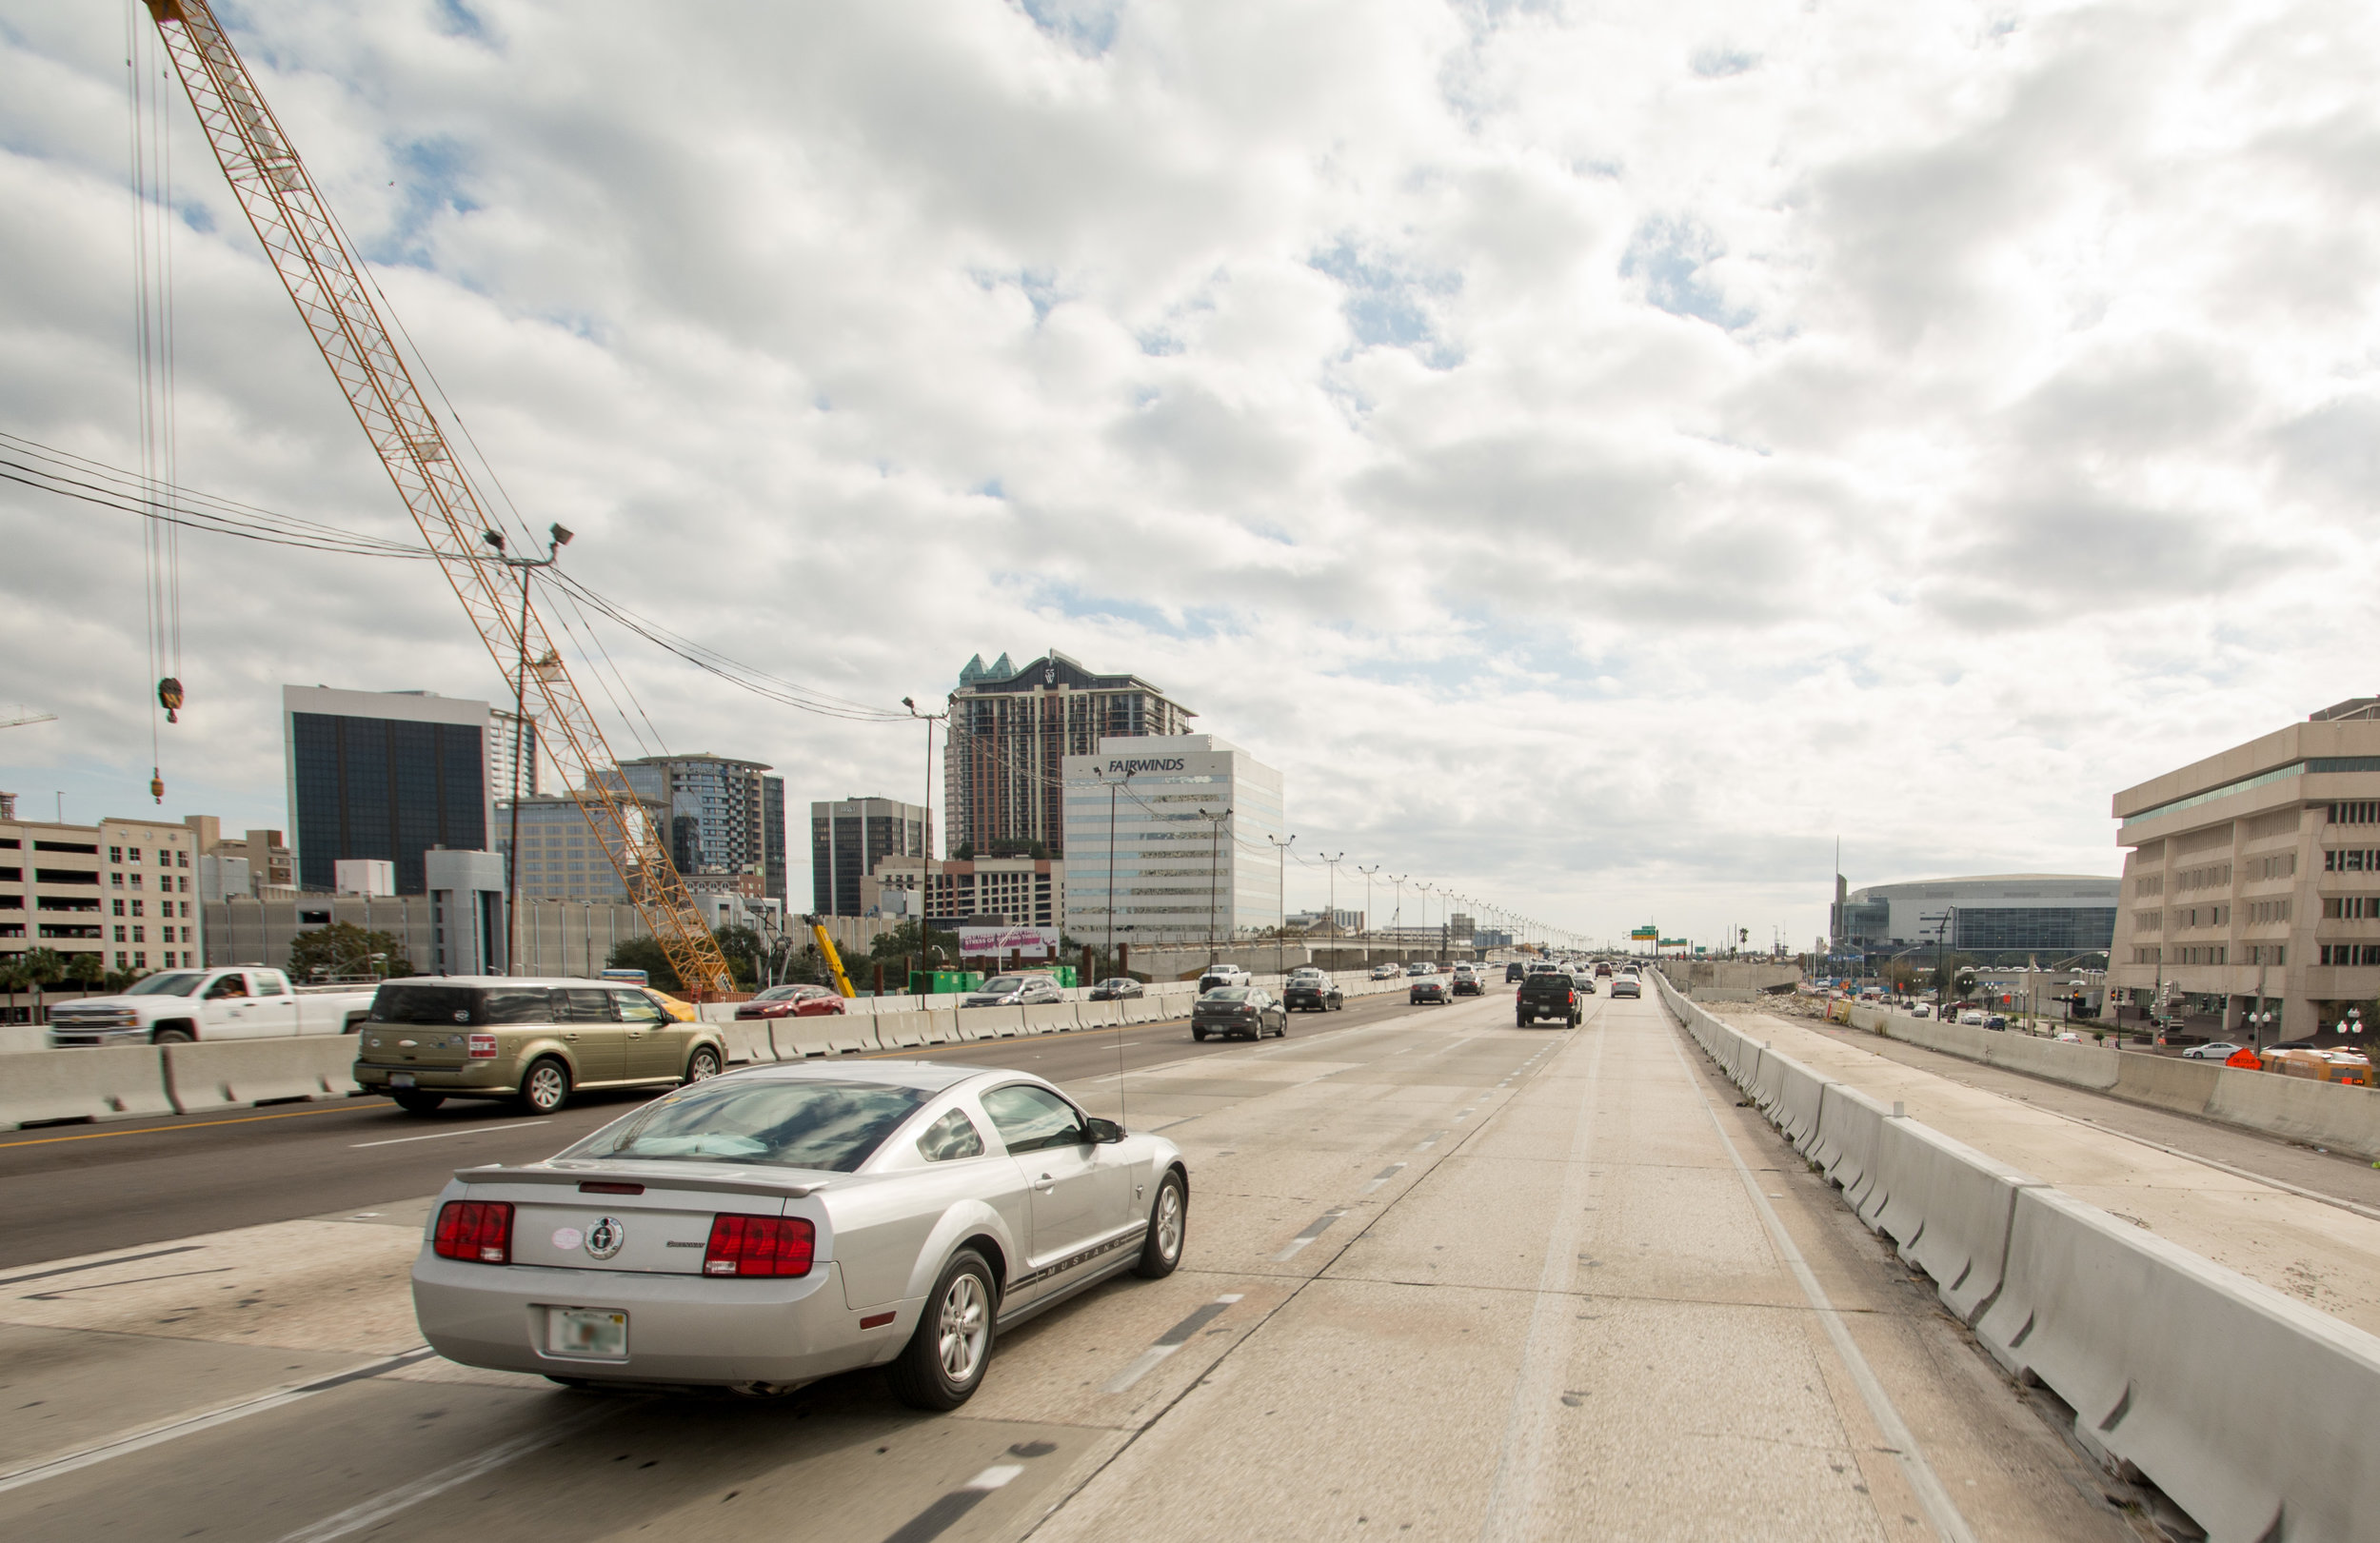 Interstate 4, recently named the most  deadly highway in the country , intersects downtown Orlando. A  $2.3 billion  overhaul of 21 miles of the road is currently underway. By 2021, the region will have an even larger highway to its name.